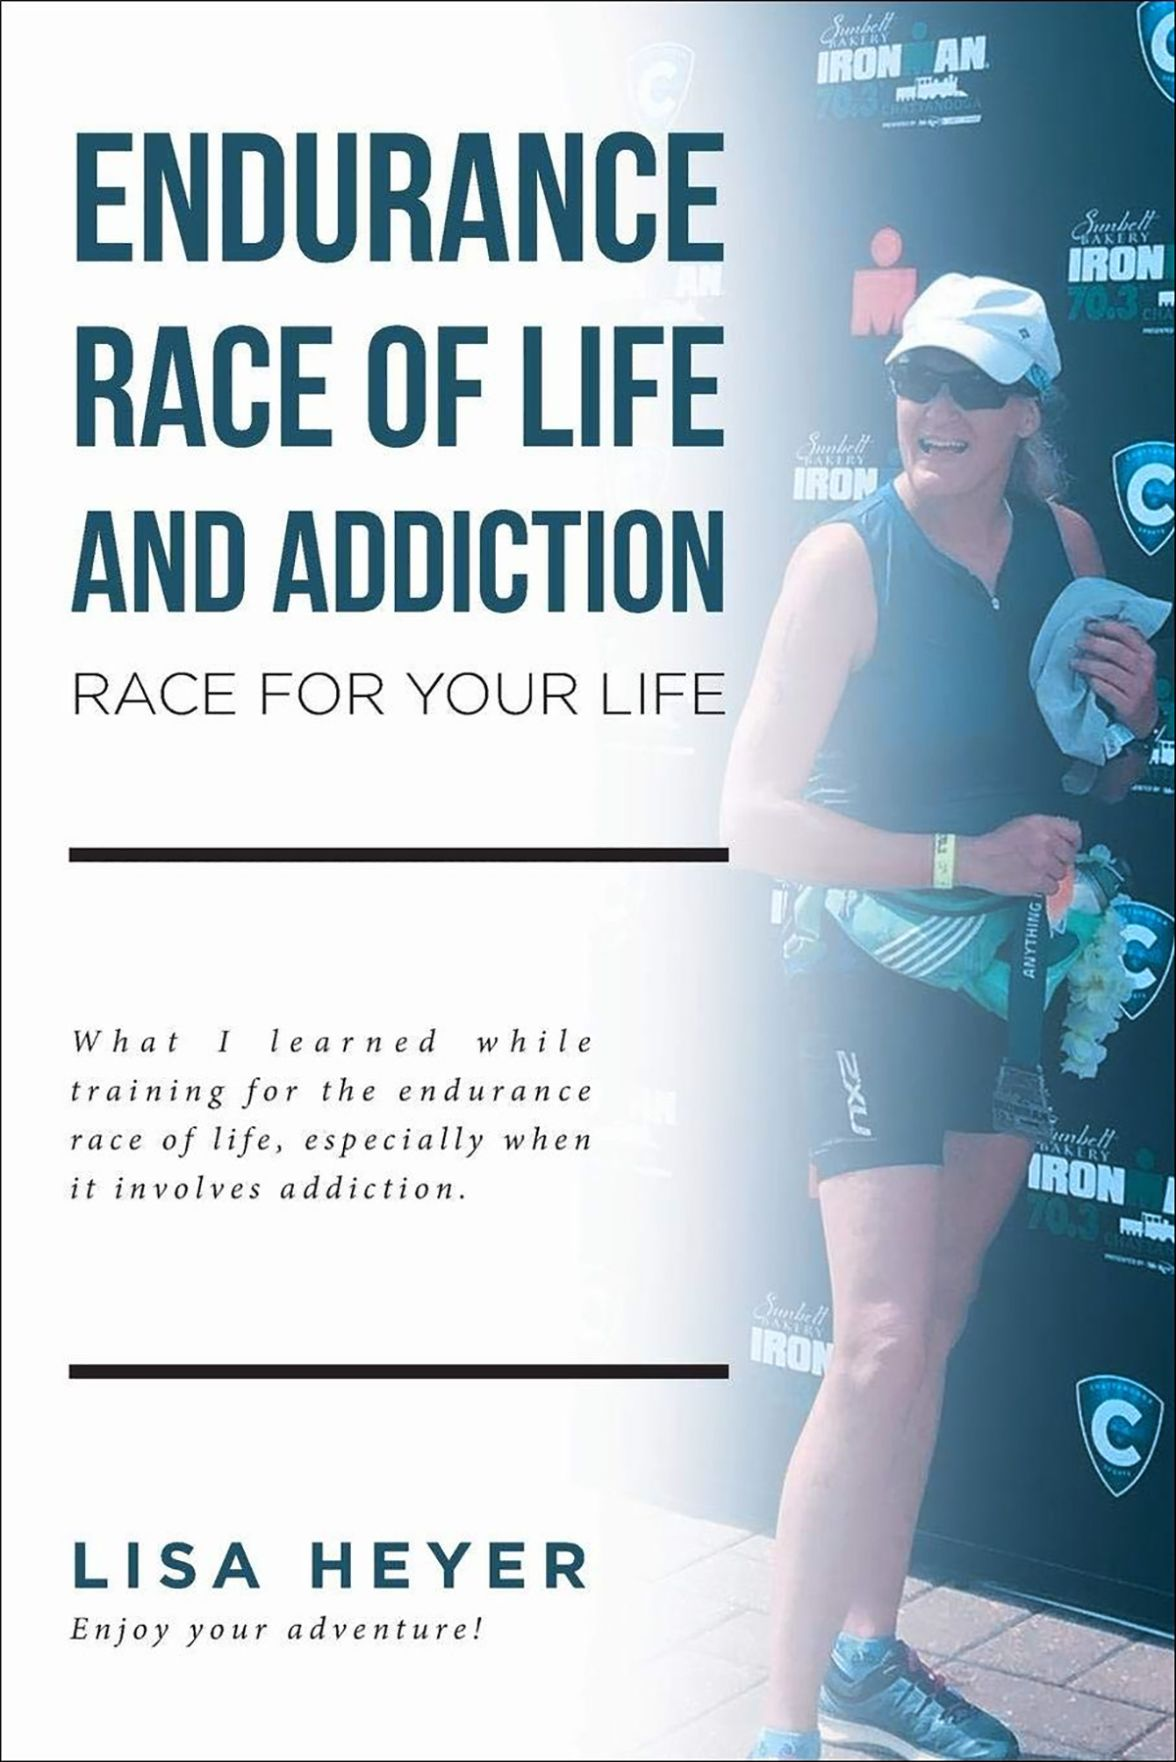 Book: Endurance Race of Life and Addiction by Lisa Heyer